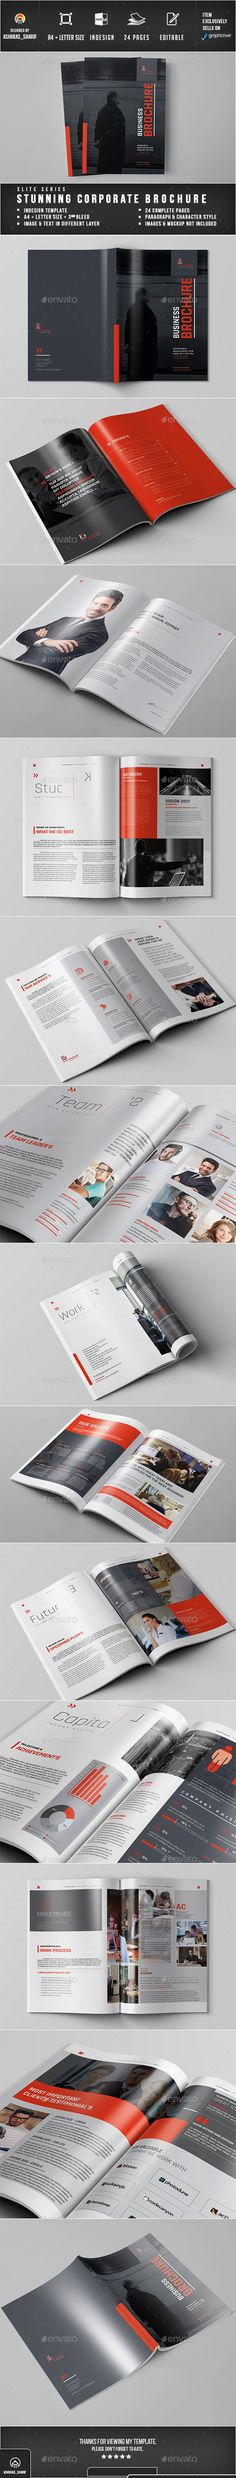 Brochure by ashuras_sharif Stunning Brochure Template 24 Pages Document, Two Different Sizes A4 and US Letter. All units and text are layered to customize ea